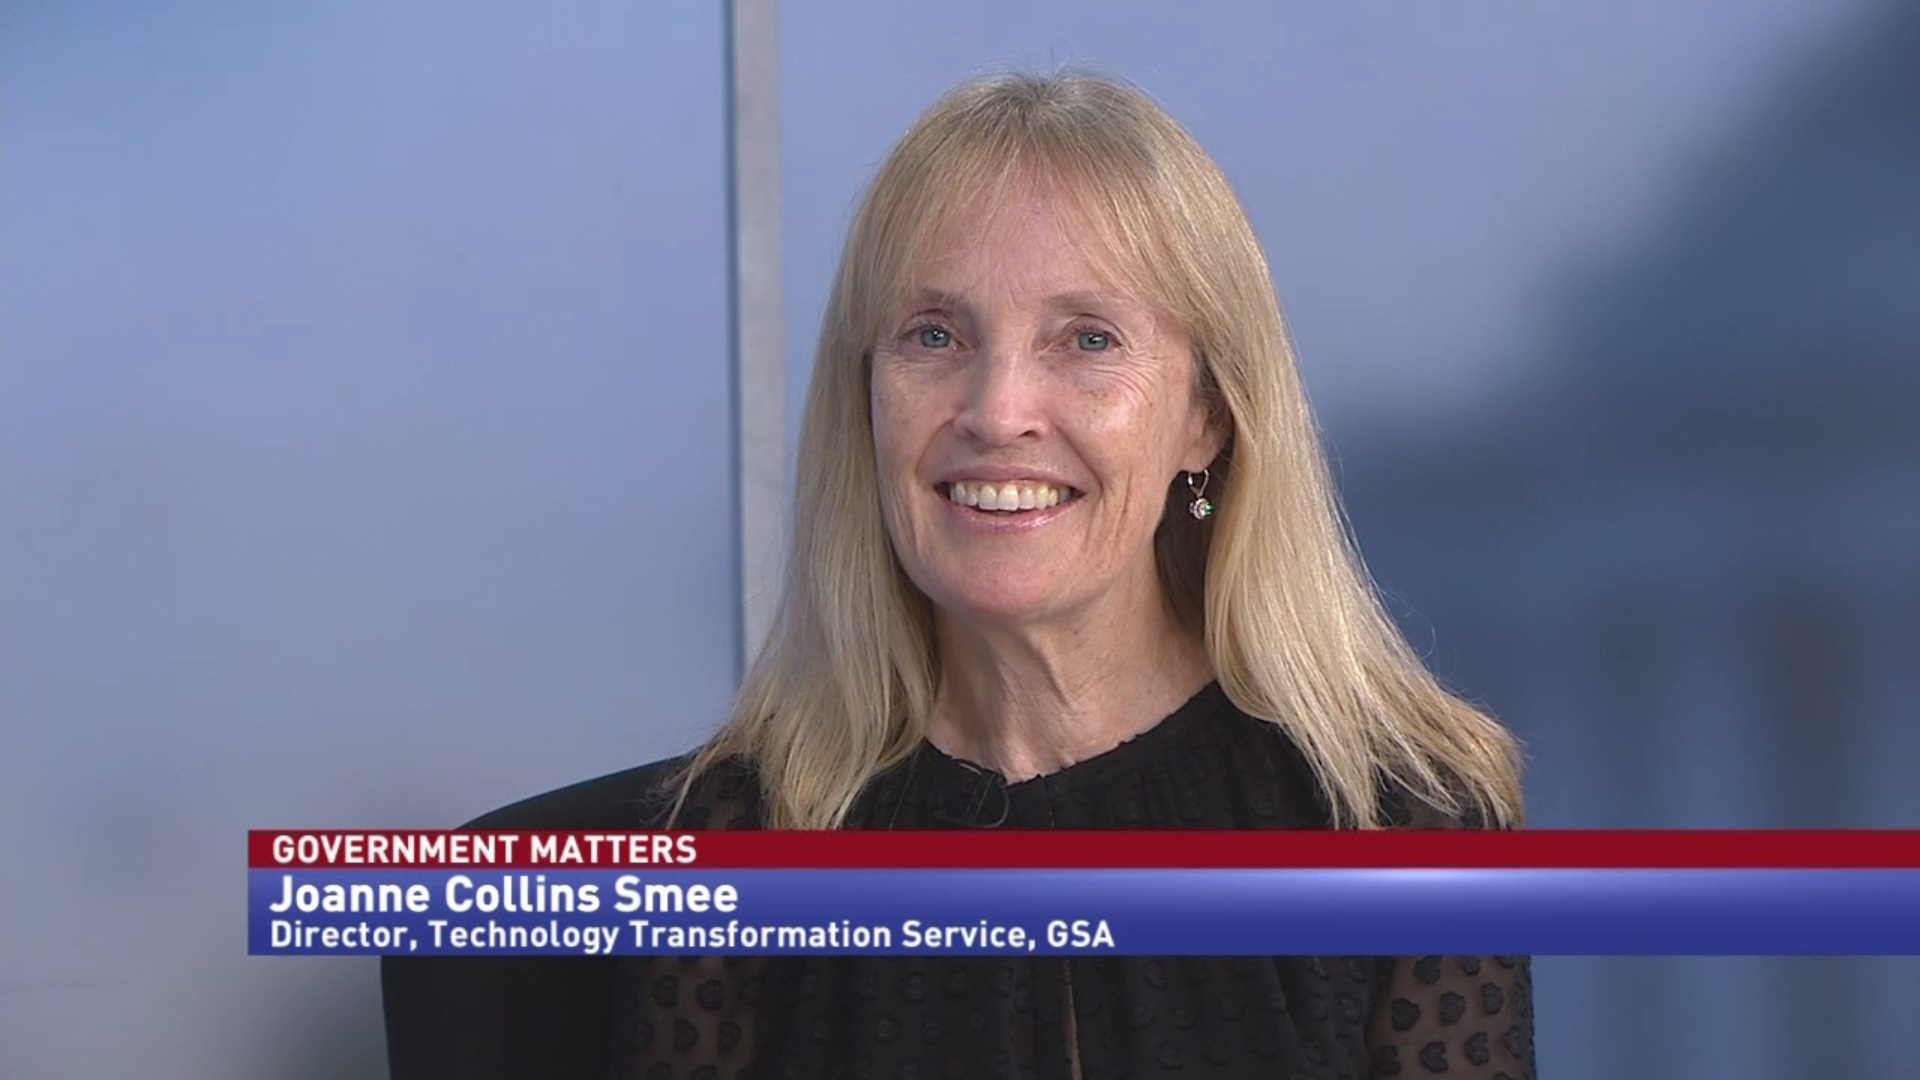 Exit interview with GSA Technology Transformation Service Director Joanne Collins Smee